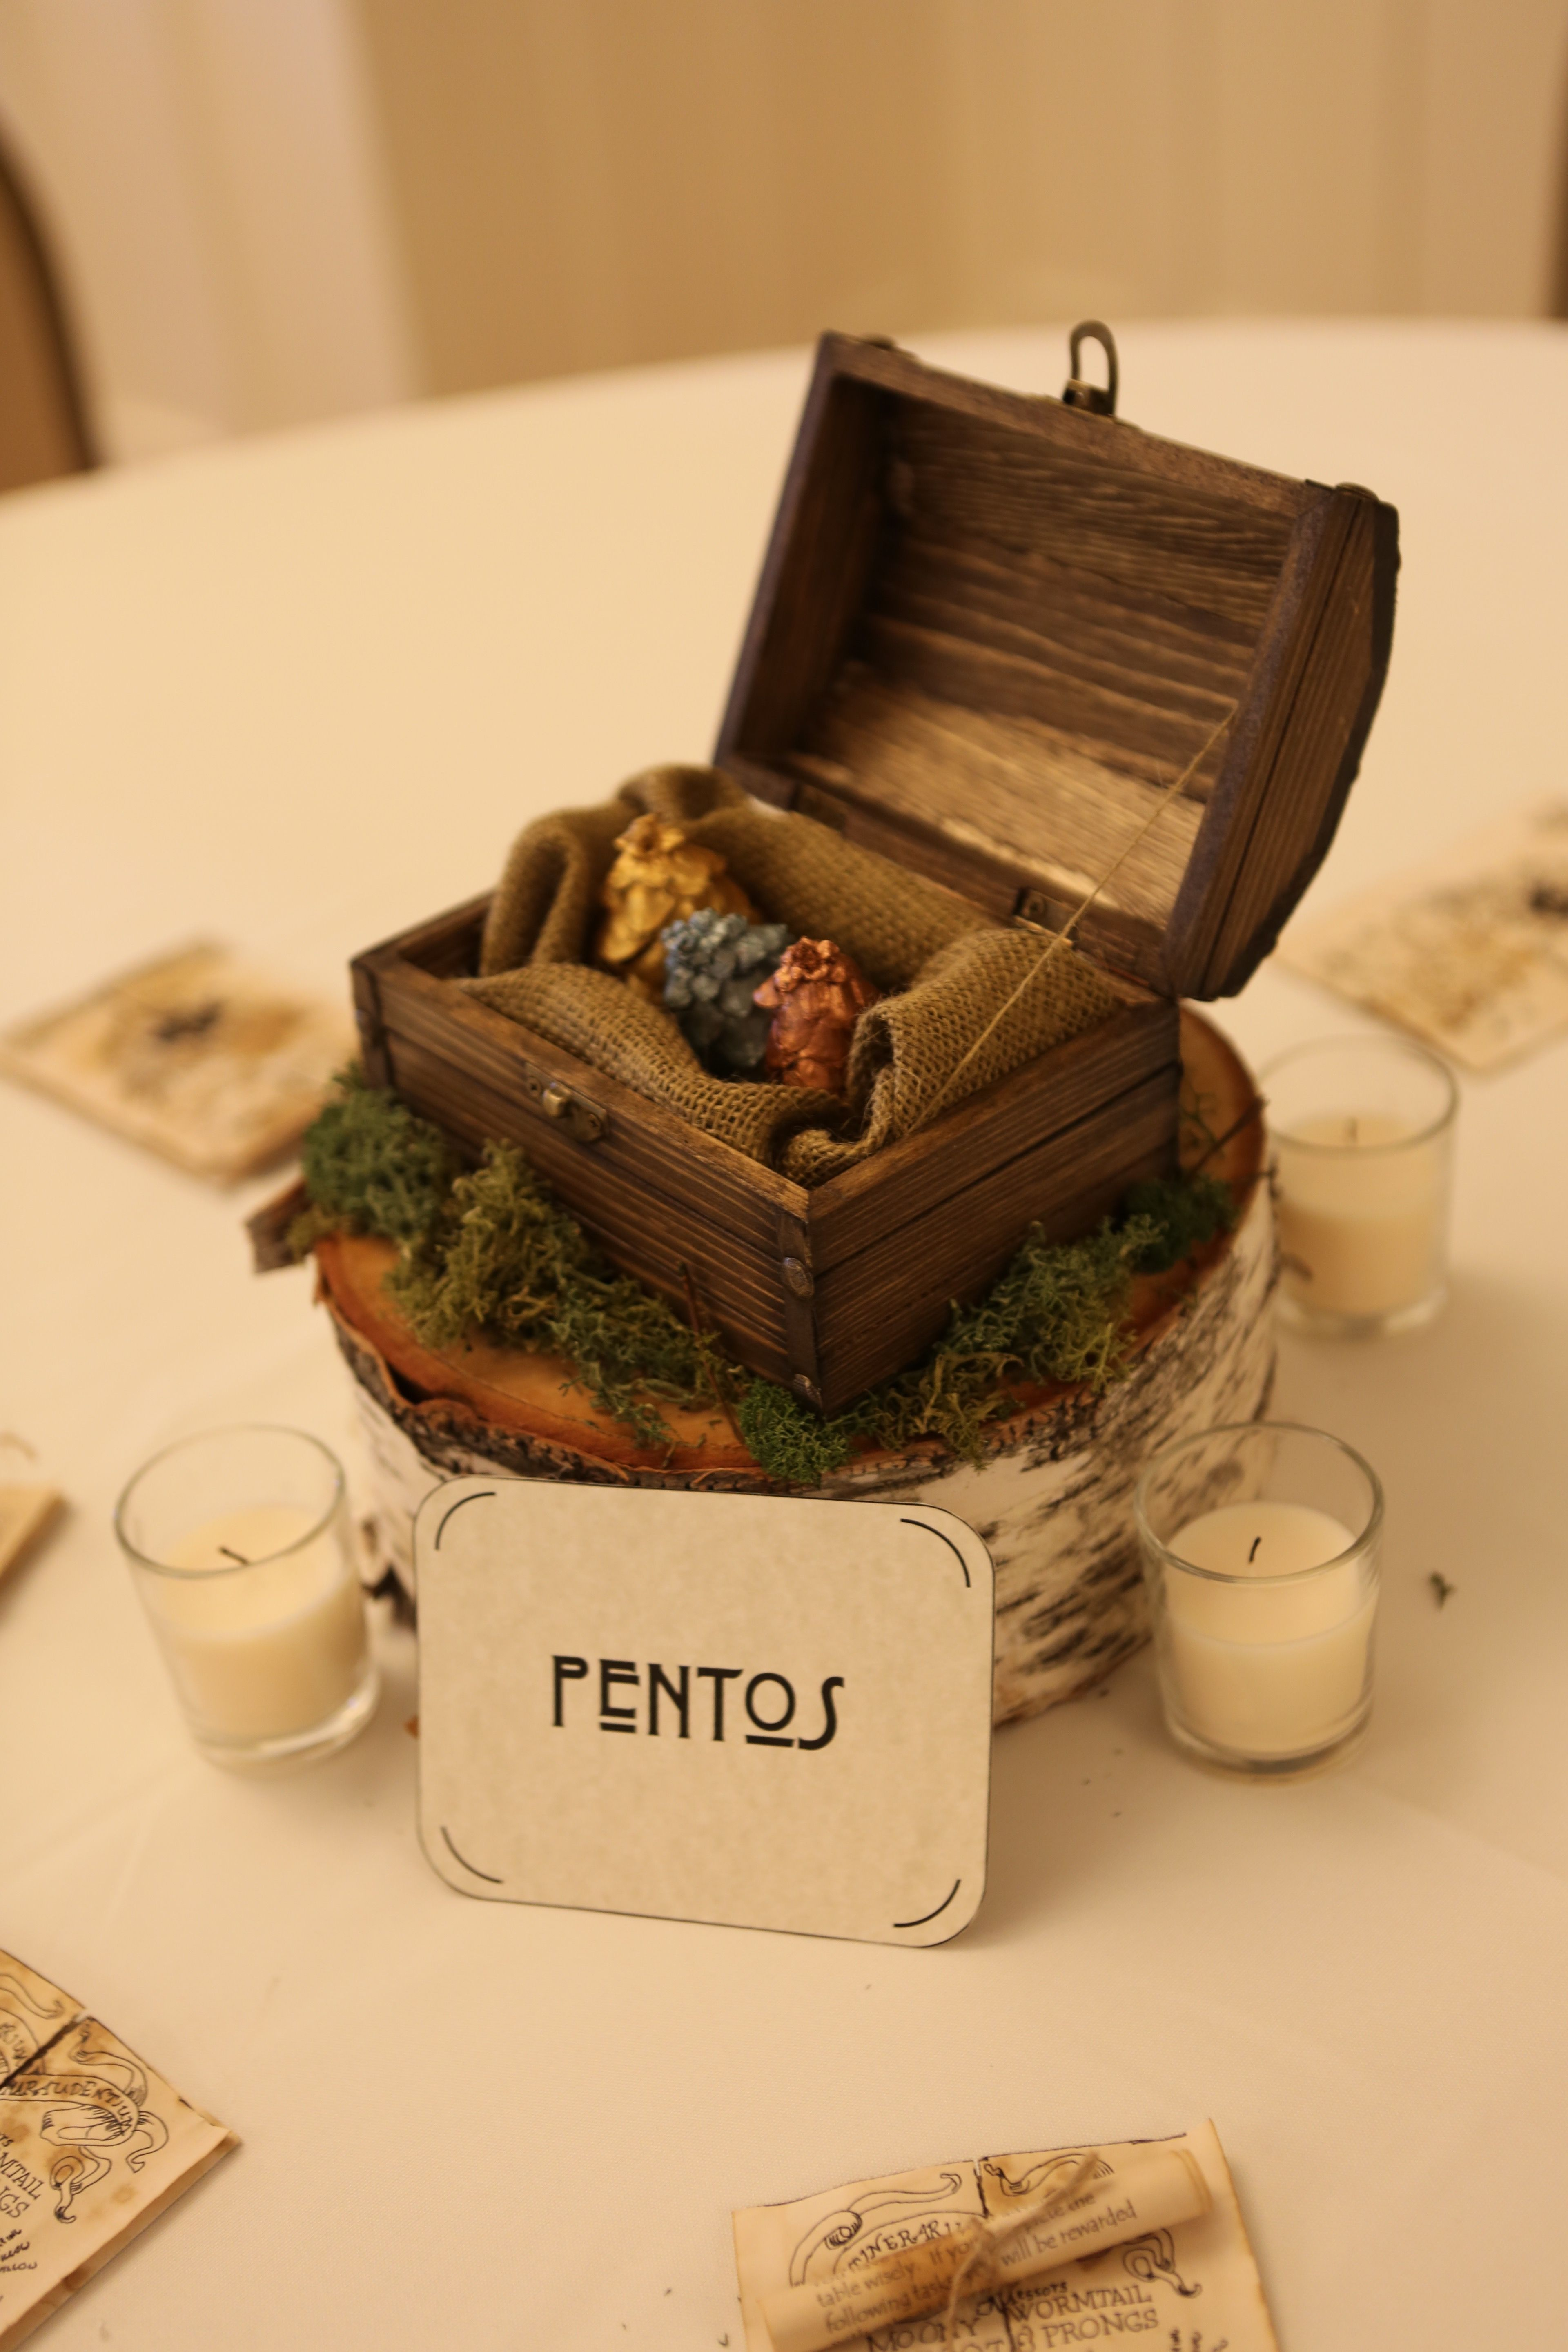 Pentos Games Of Thrones Table Centerpiece My Geeky But